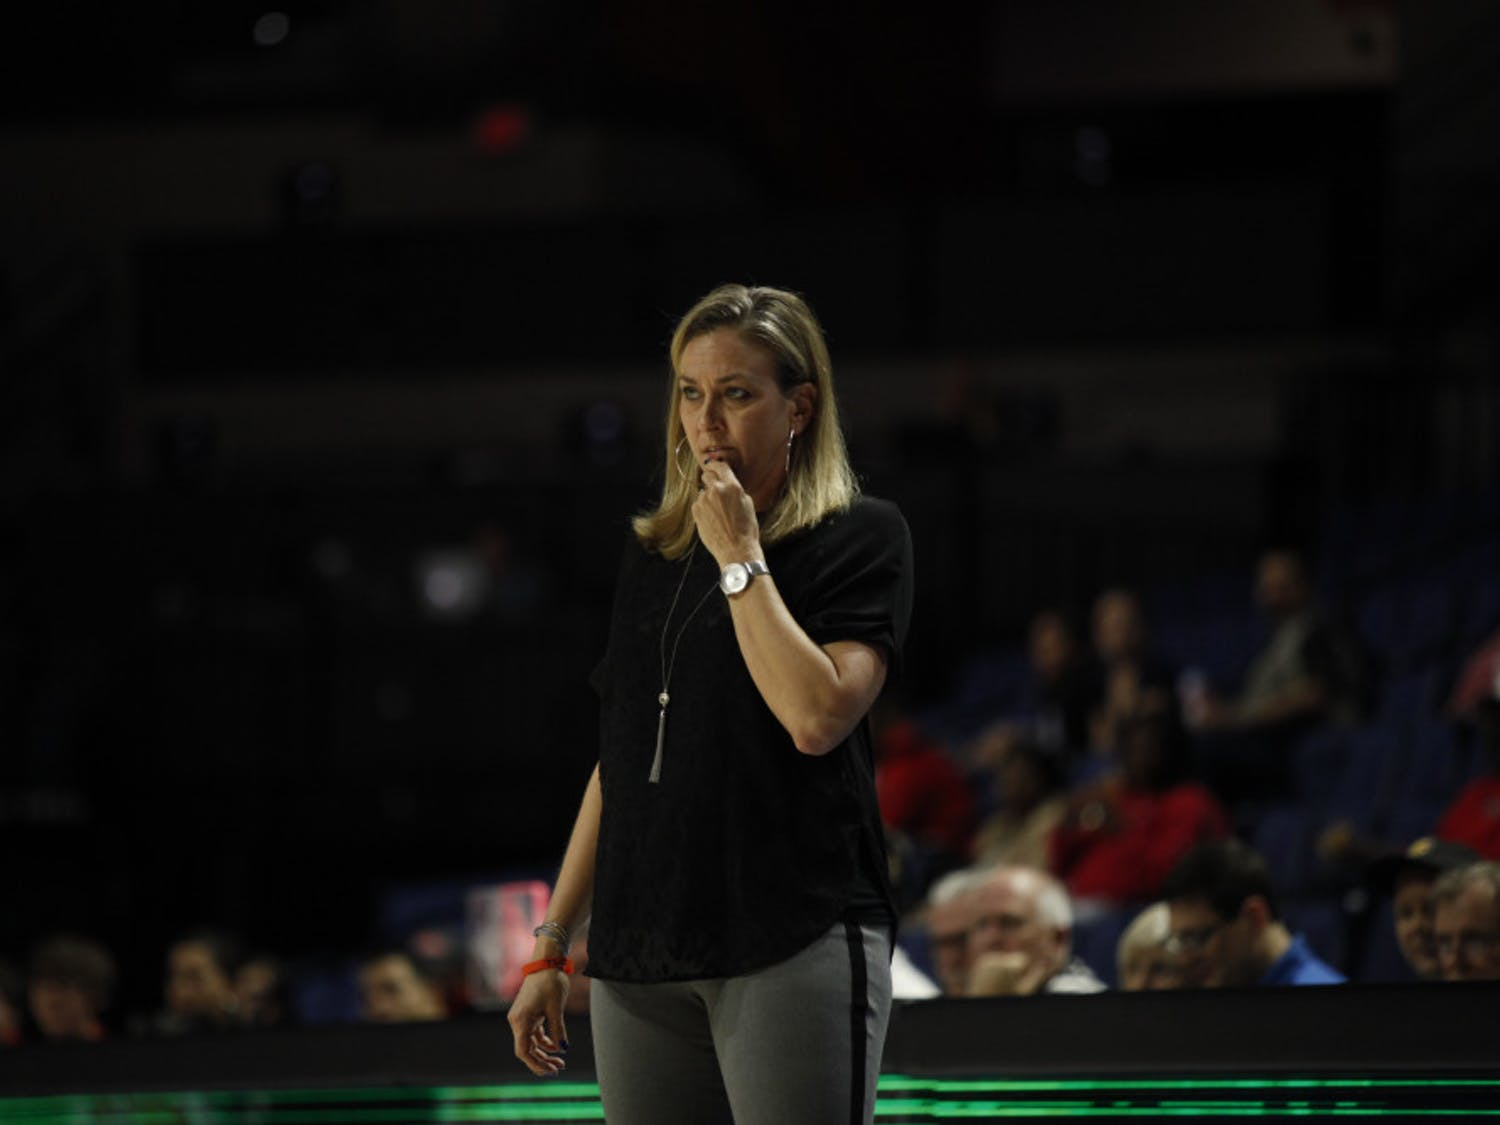 Former UF women's basketball coach Amanda Butler looks on during Florida's loss to Ole Miss on Feb. 6 in the O'Connell Center. Butler was fired on Monday.